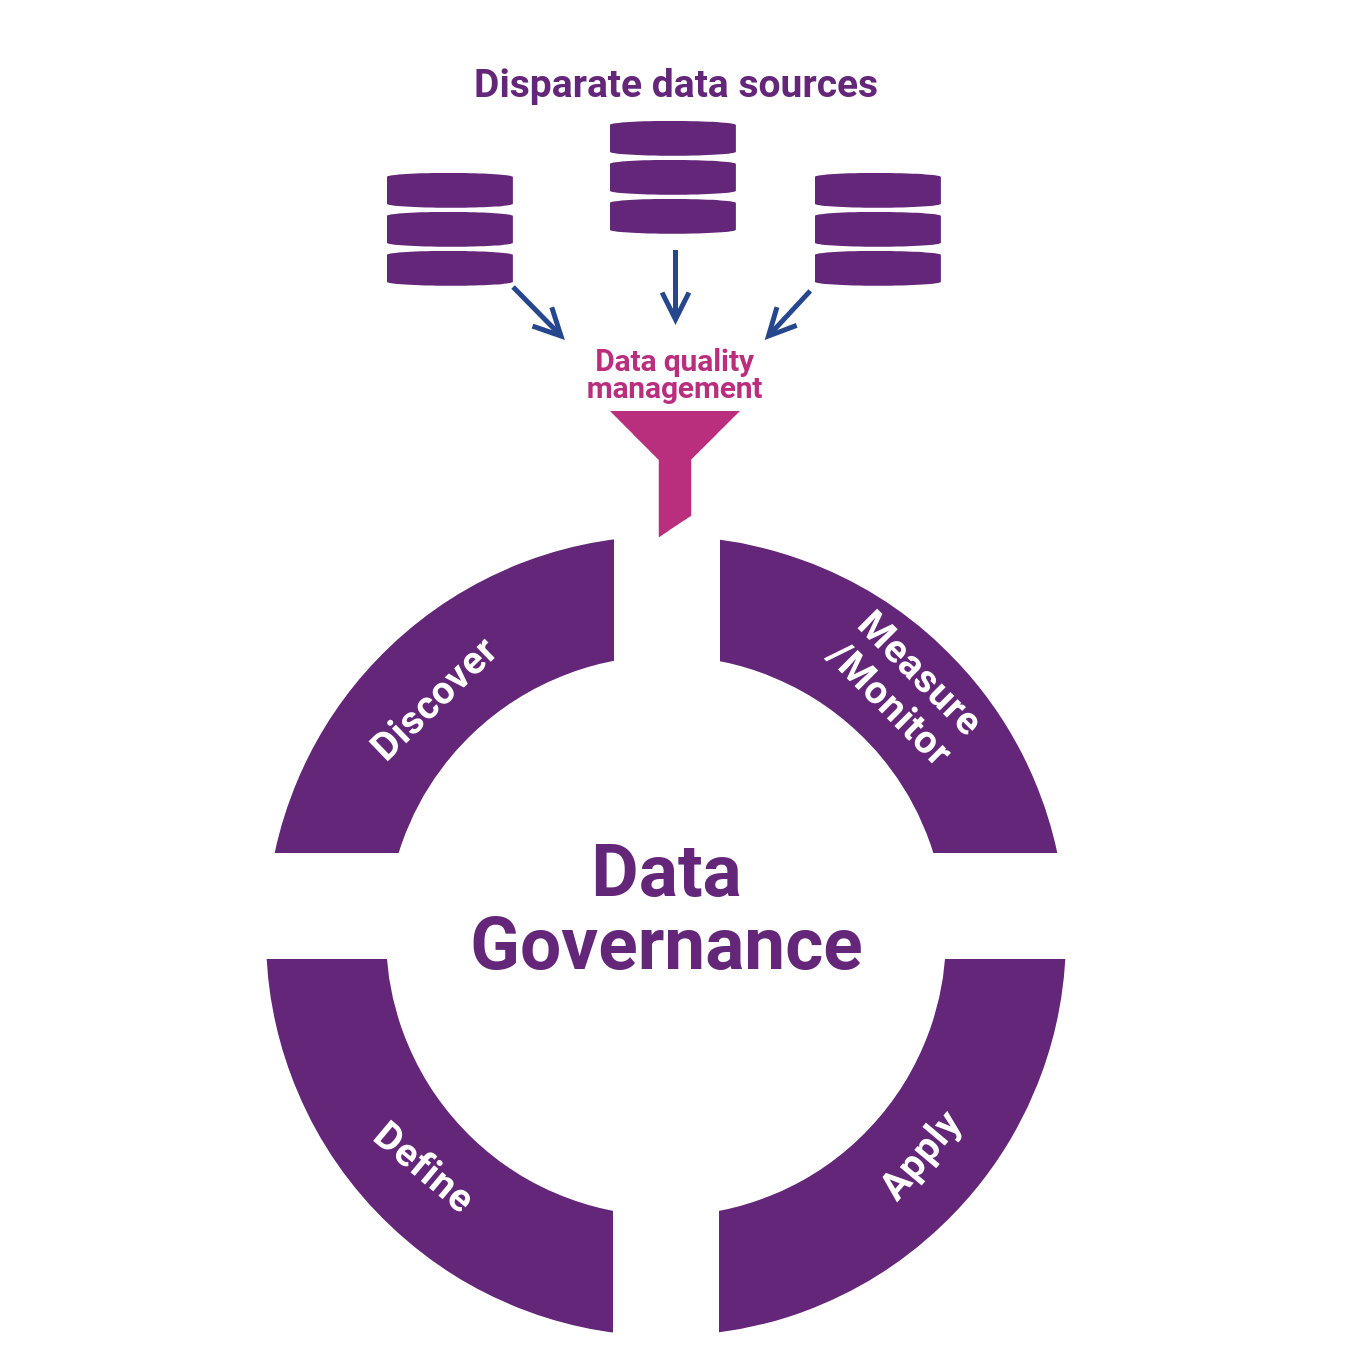 Data quality in the data governance process